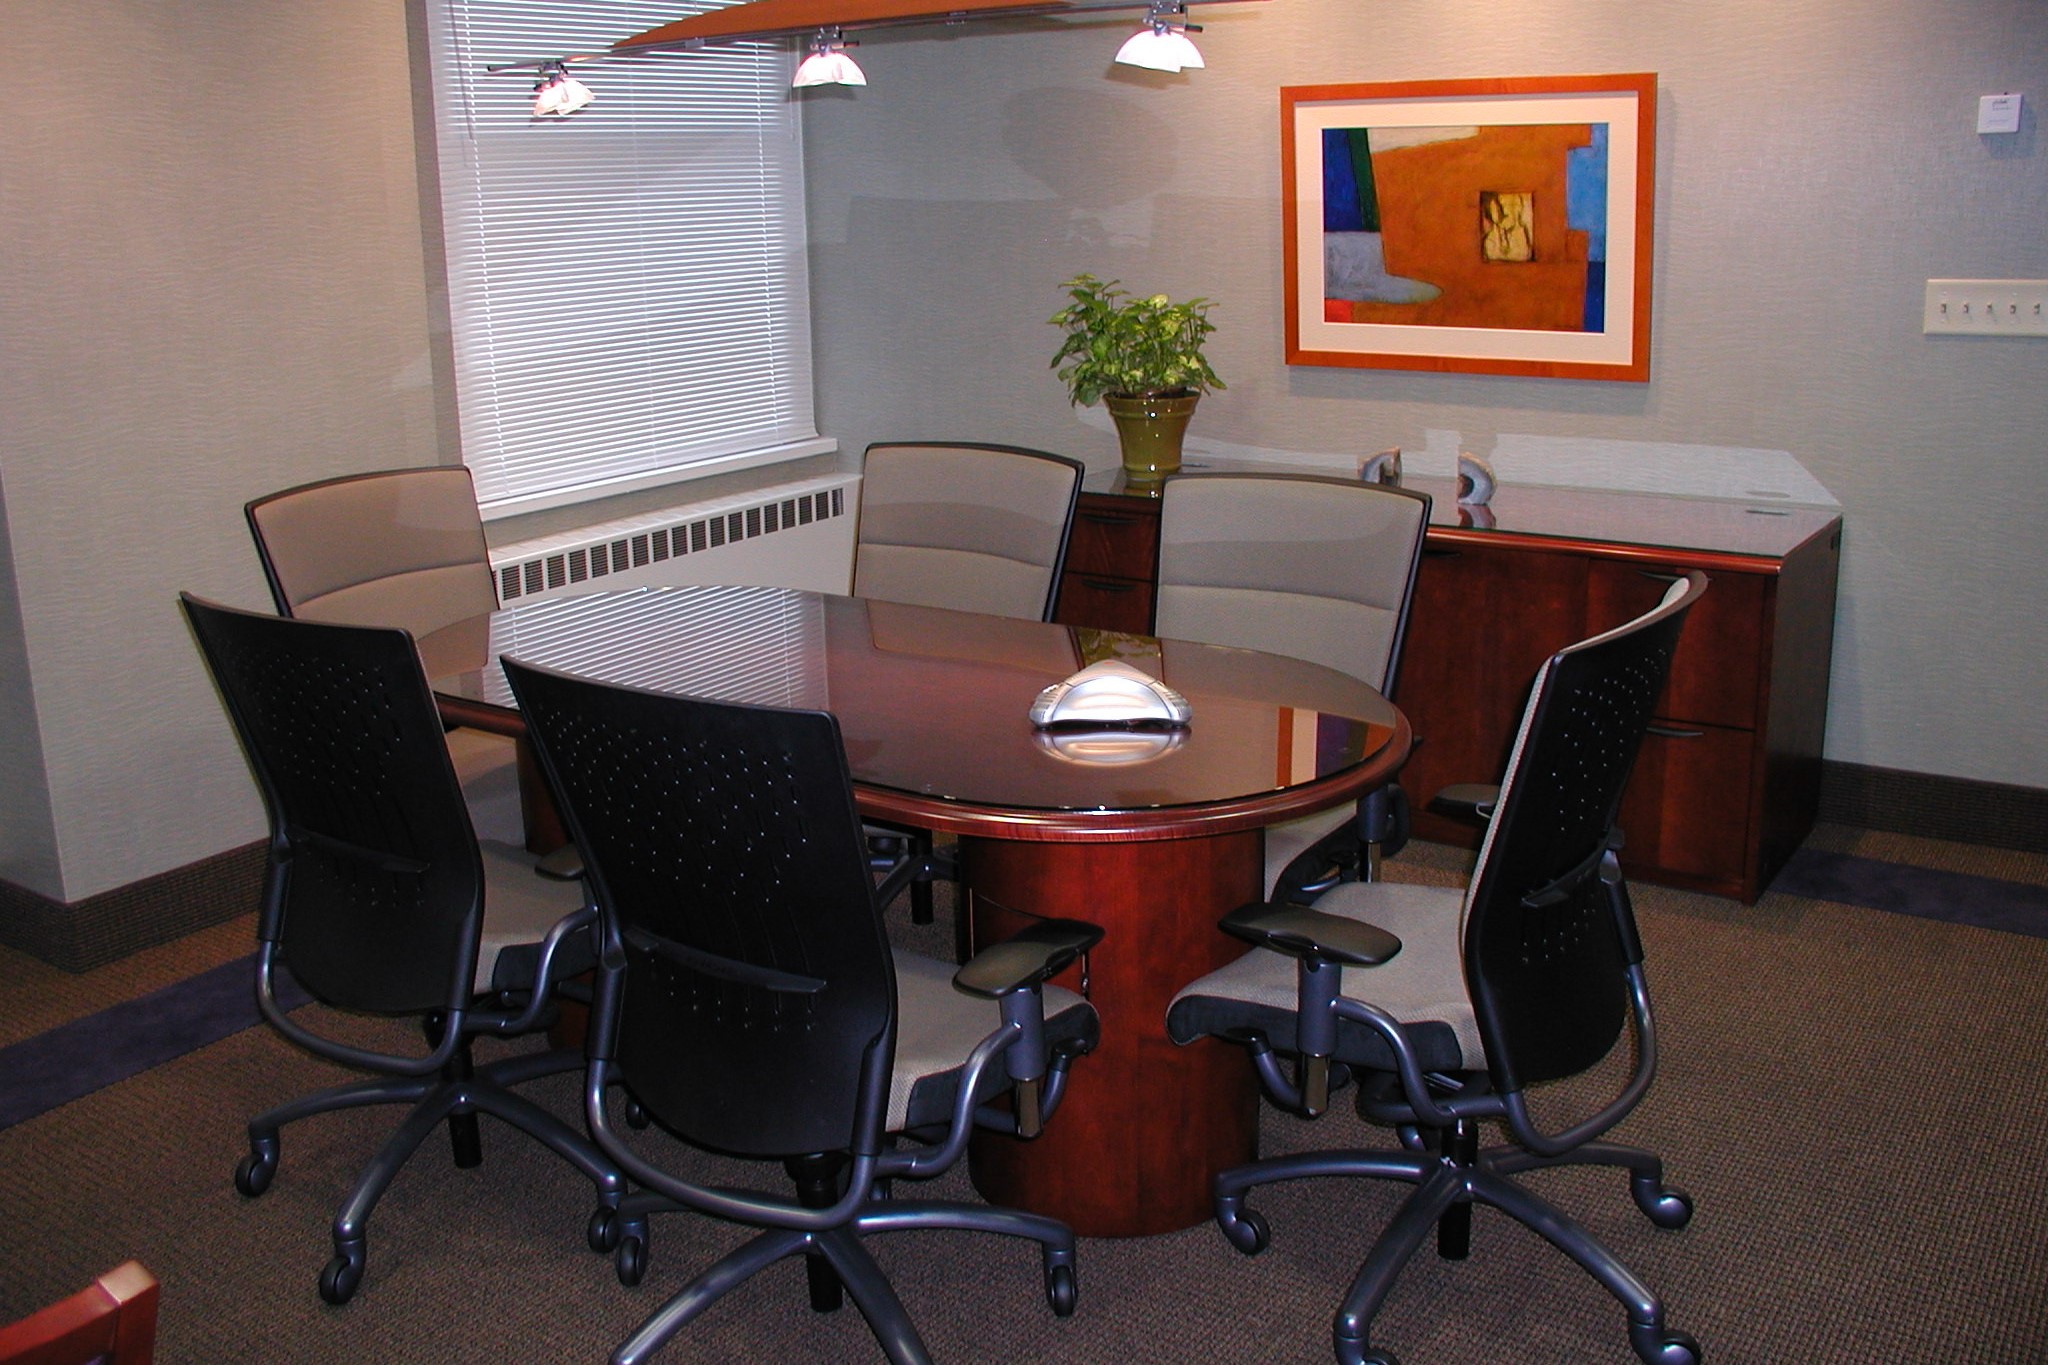 meeting using tables ideas and modular ft chairs for decorating area carpet room desk tips table plus conference